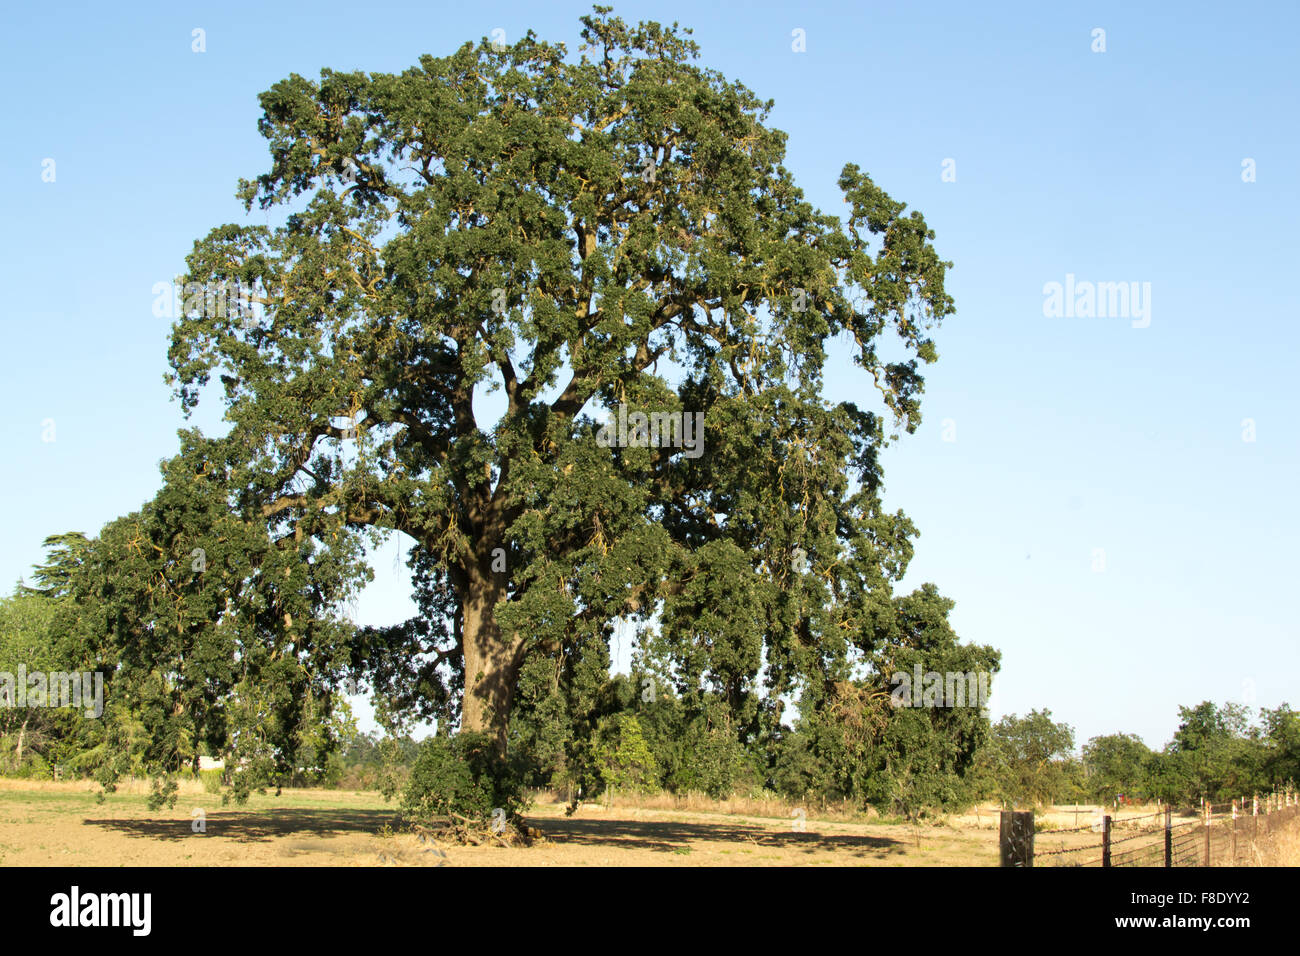 oak-tree-in-the-very-dry-central-valleys